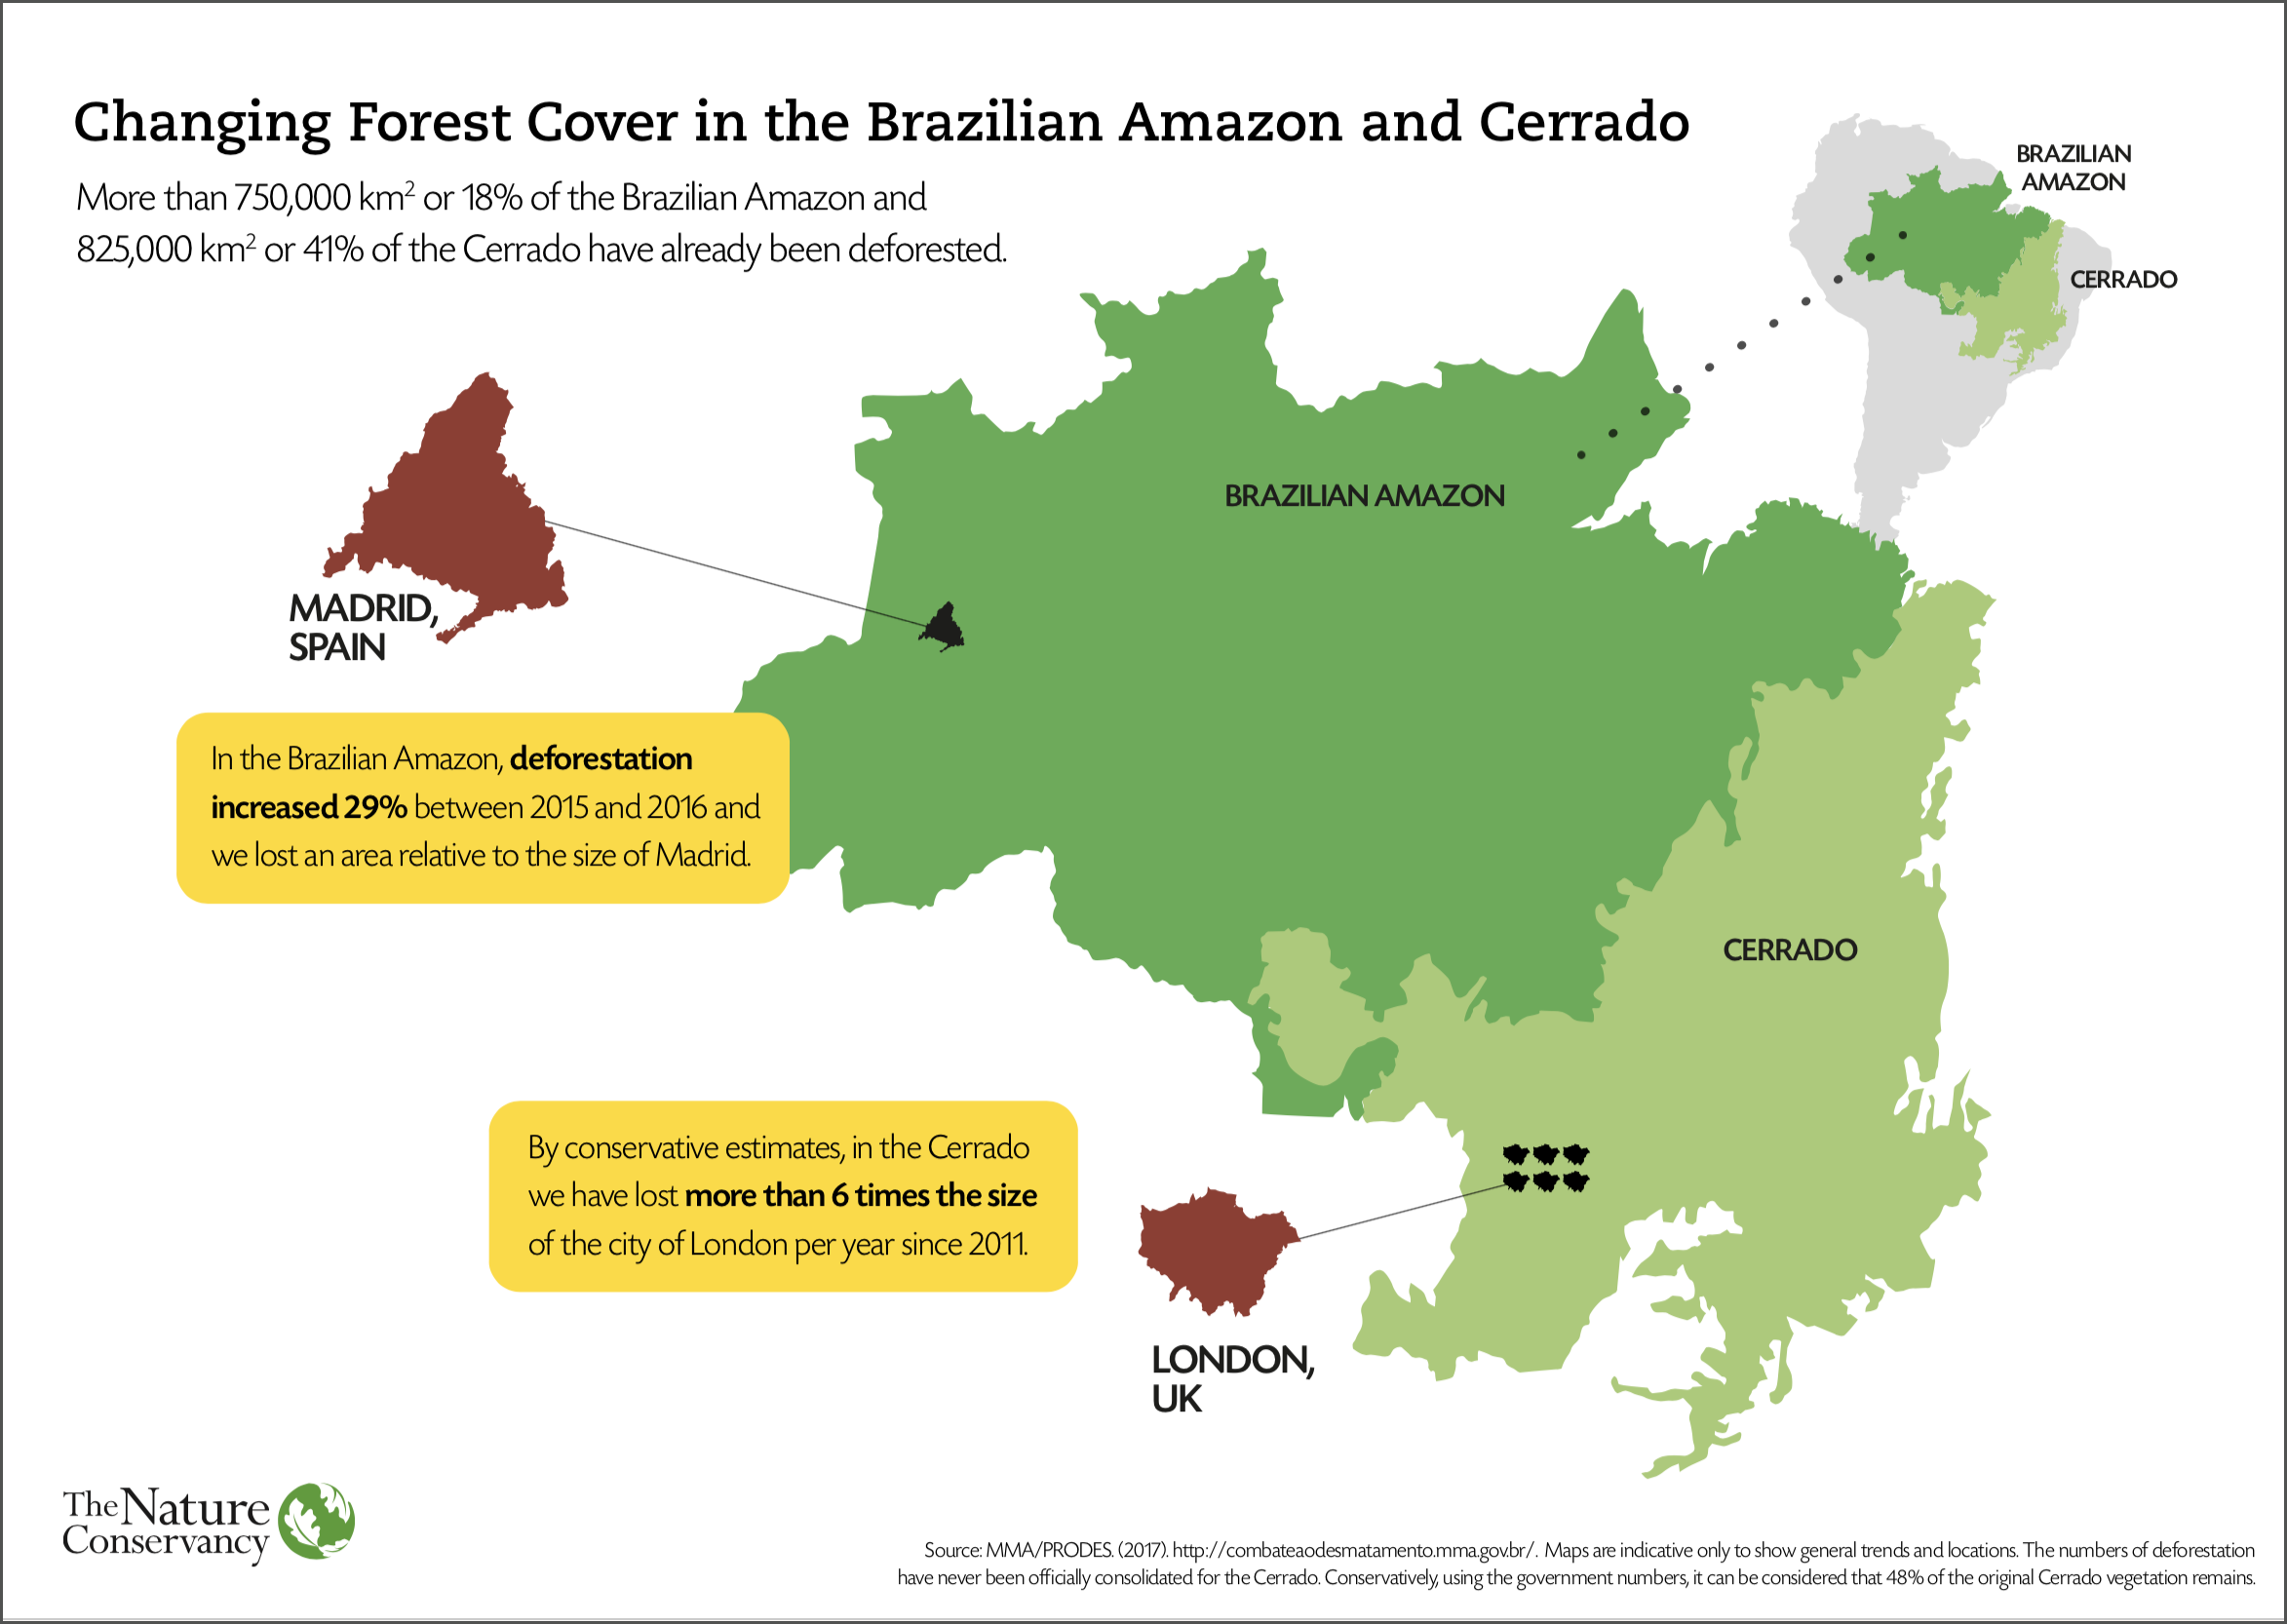 This map shows the amount of deforestation in the Brazilian Amazon and Cerrado, with comparative European city estimates.